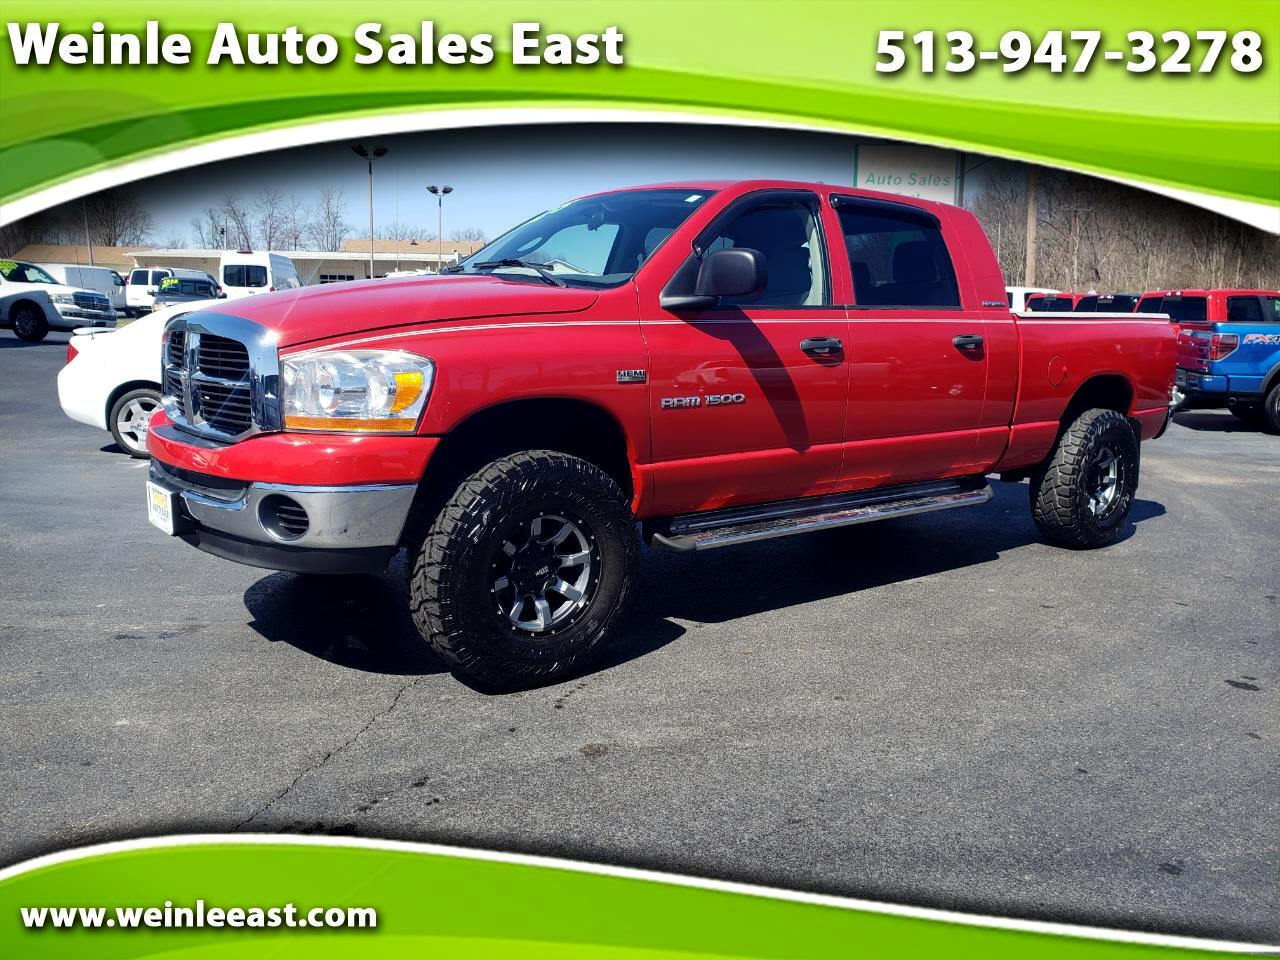 2006 Dodge Ram 1500 4DR MEGA CAB SLT 4WD CUSTOM WHEELS SHARP